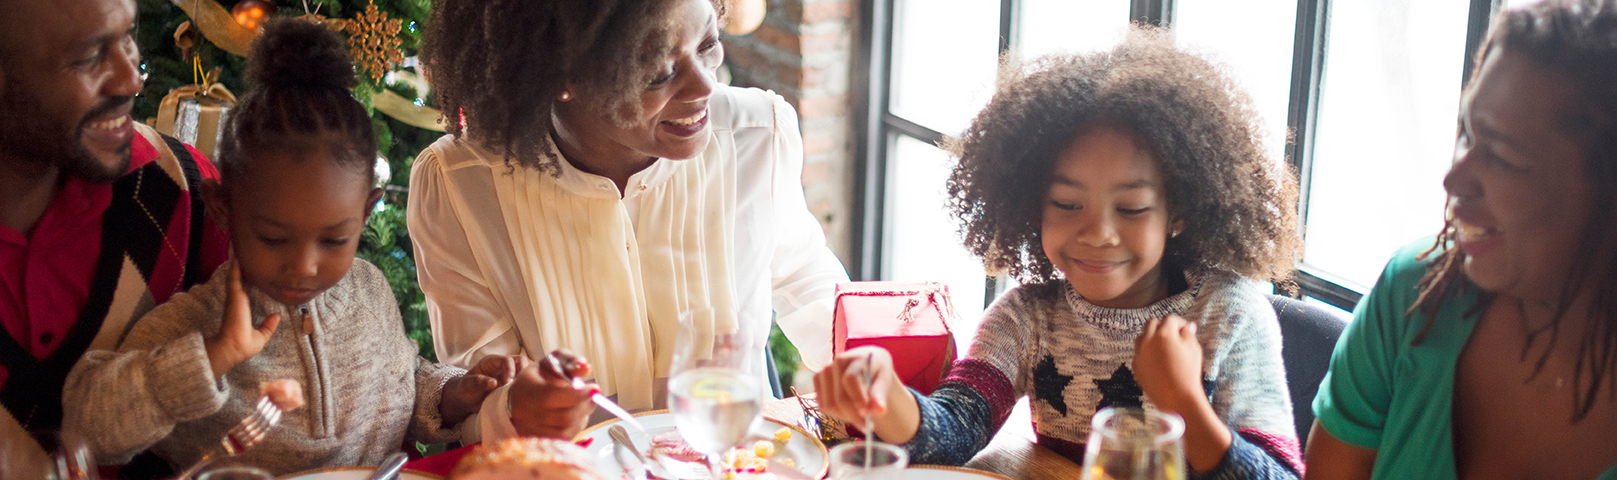 an african american woman laughs with her daughter during a holiday meal despite hearing loss